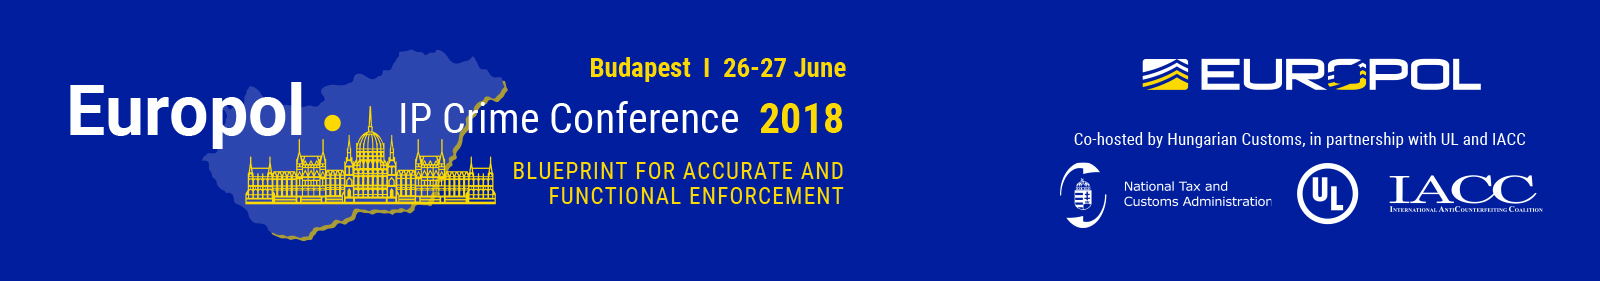 2018 Europol IP Crime Conference